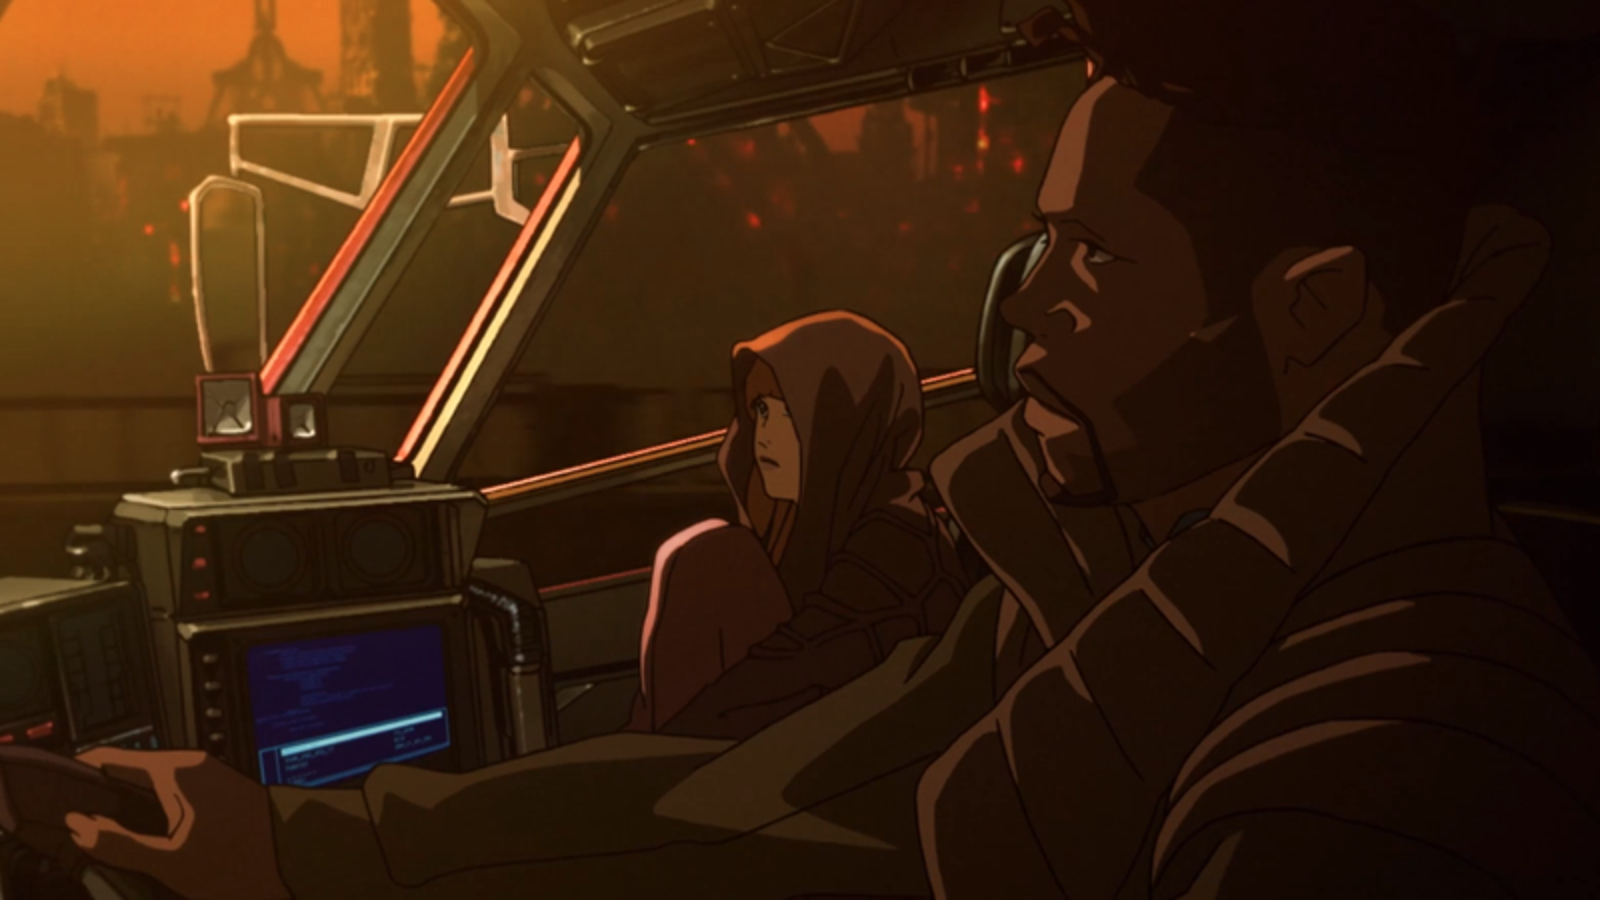 You Can Now Watch the Blade Runner 2049 Prequel Anime From the Director of Cowboy Bebop